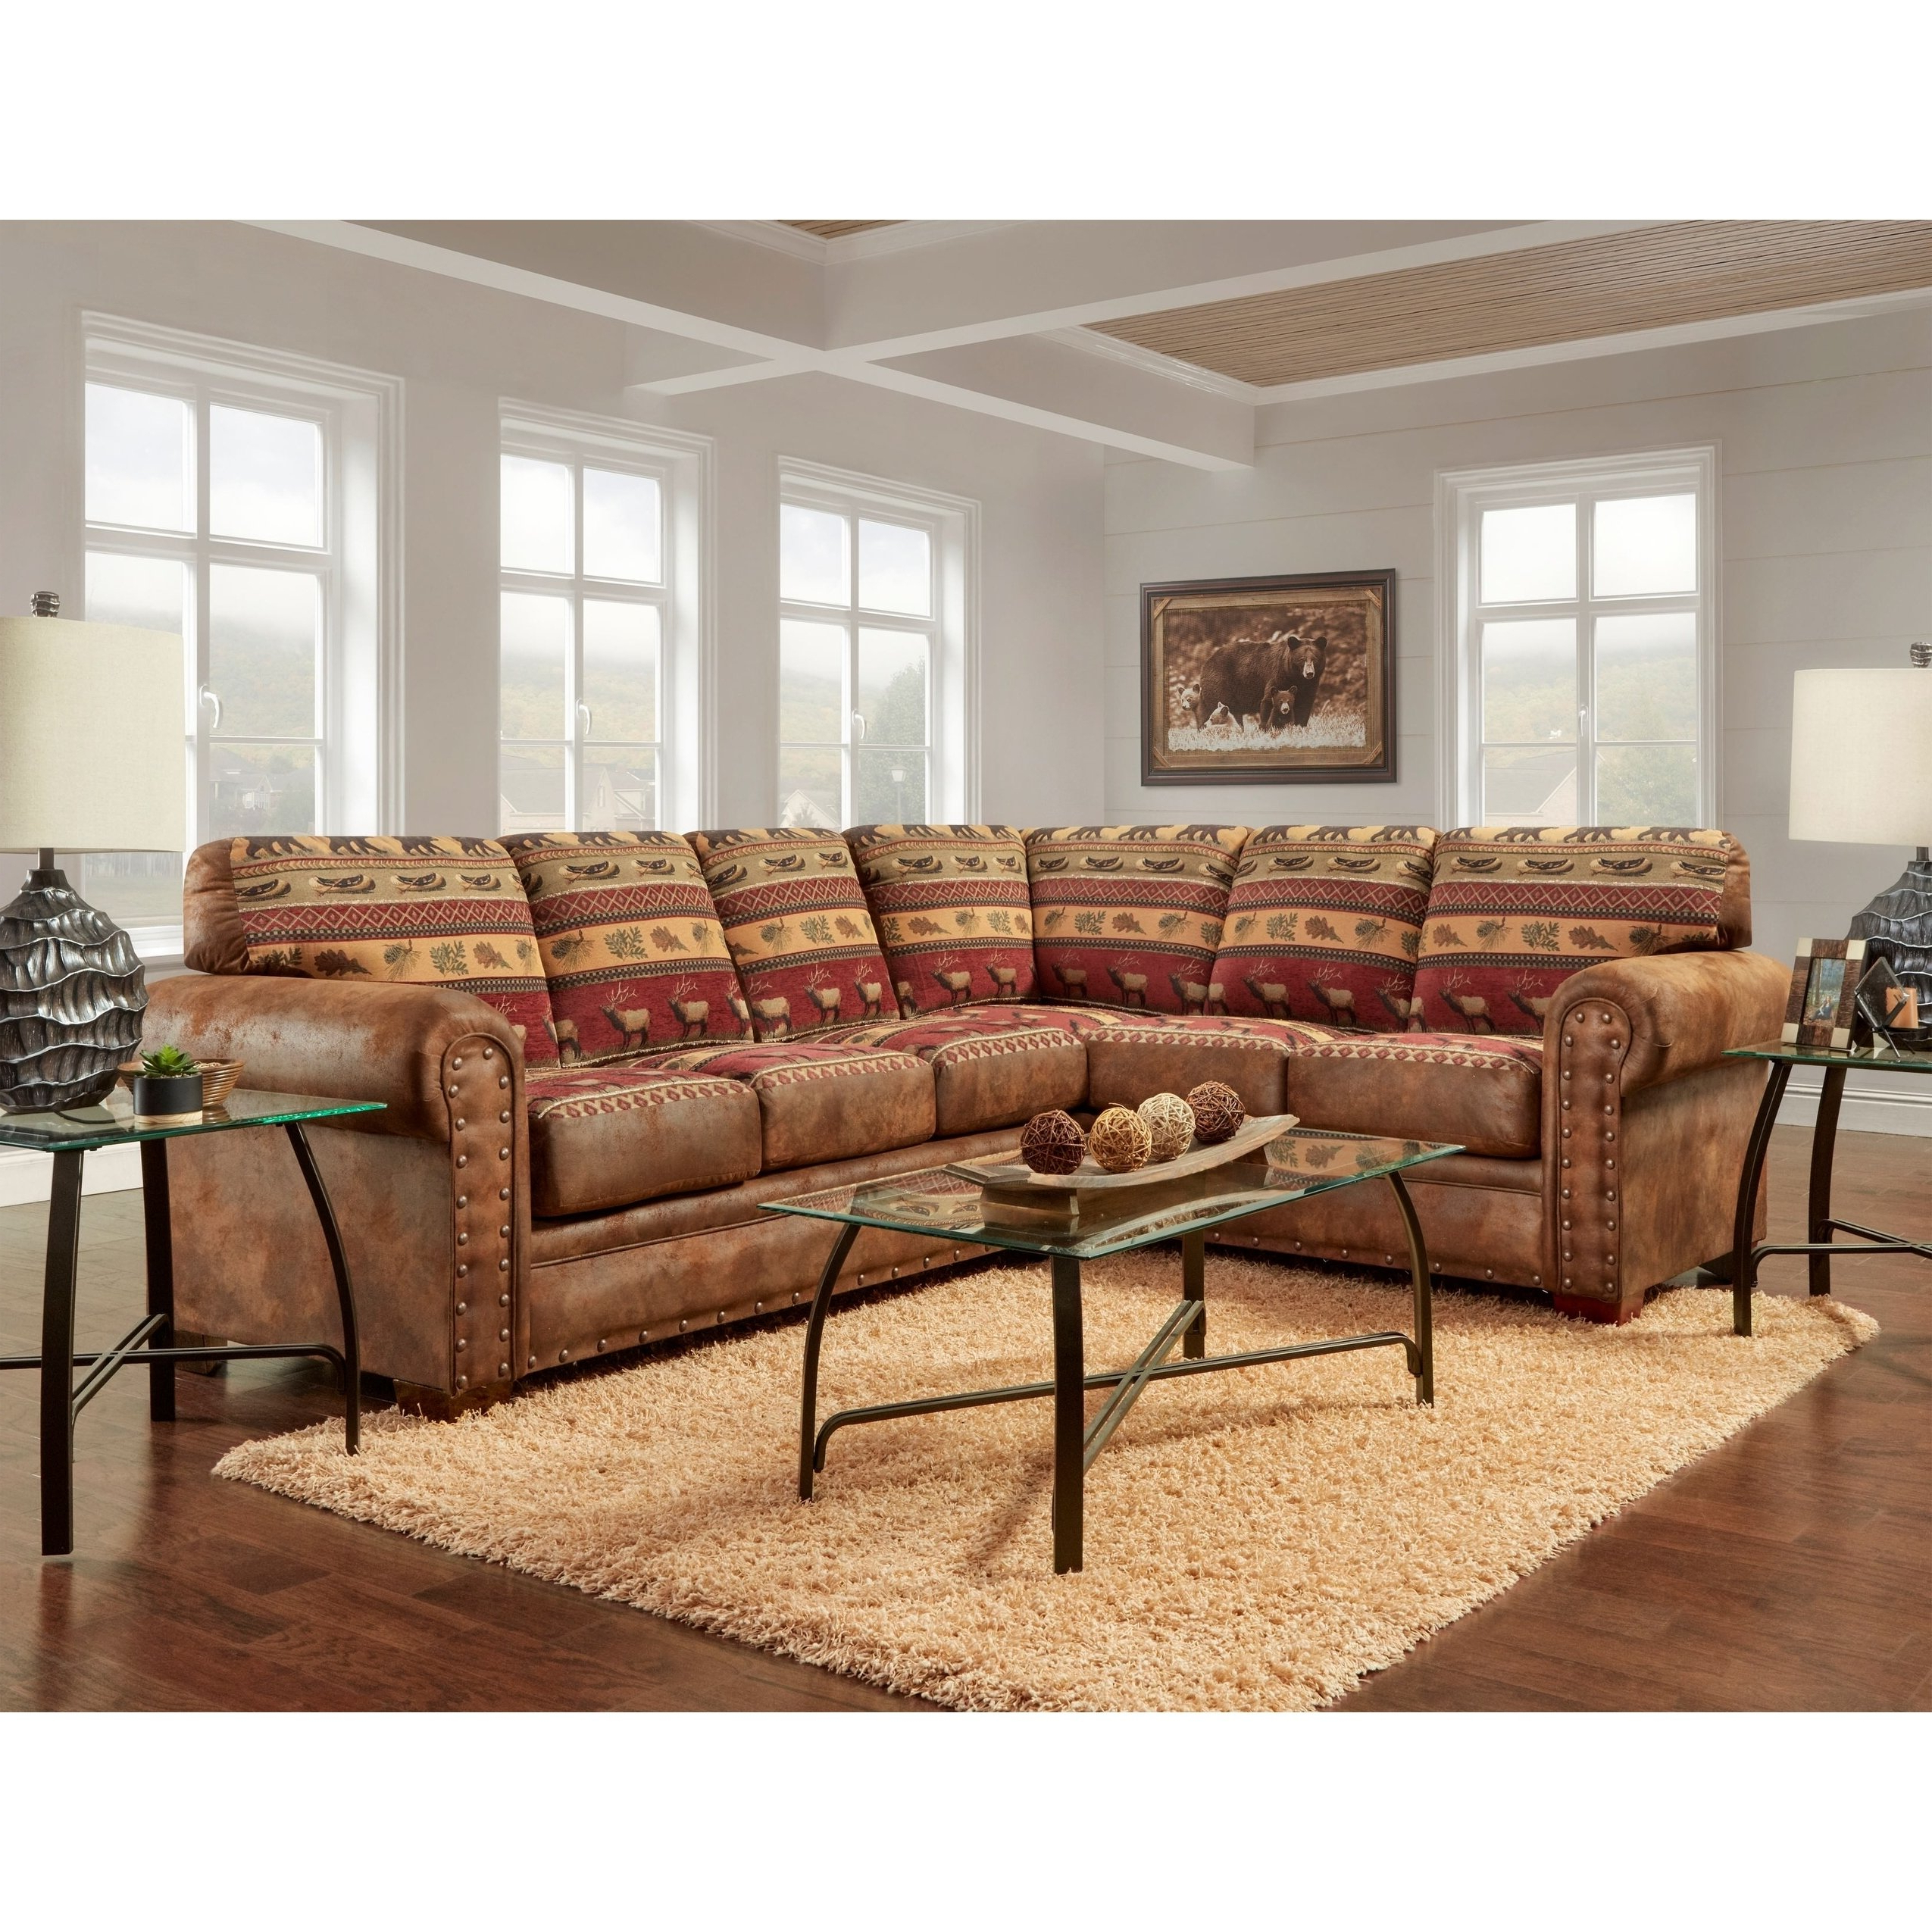 Shop American Furniture Classics Model B1650K Sierra Lodge Two Piece With Regard To Favorite Sierra Foam Ii 3 Piece Sectionals (View 13 of 20)